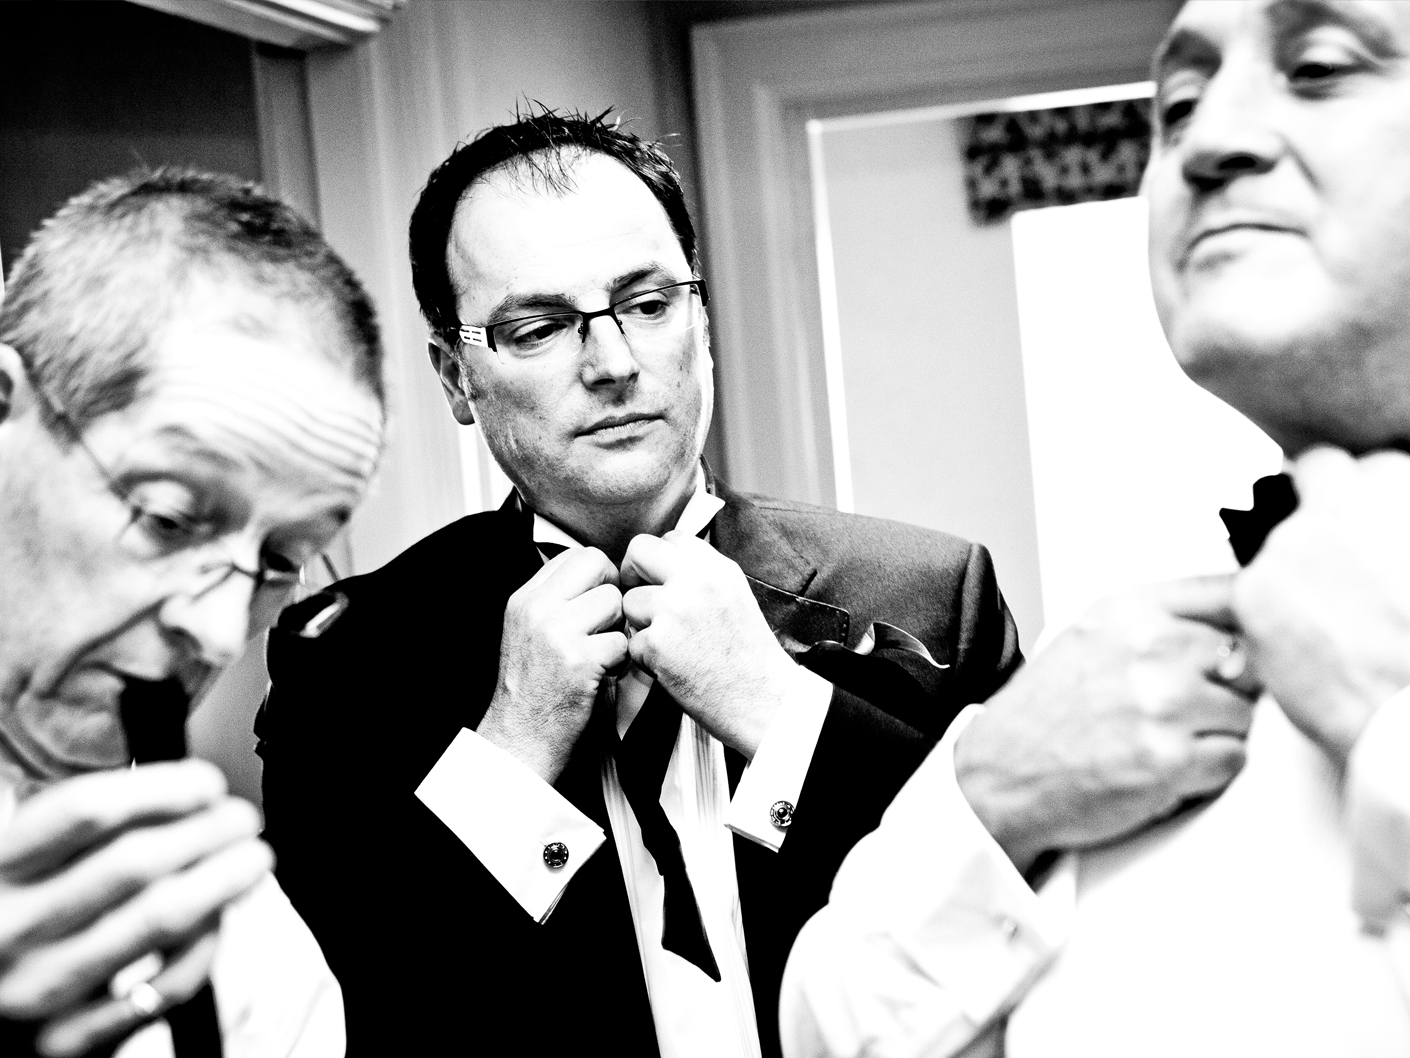 wedding-photography-of-the-groom-getting-ready-at-mottram-hall-cheshire